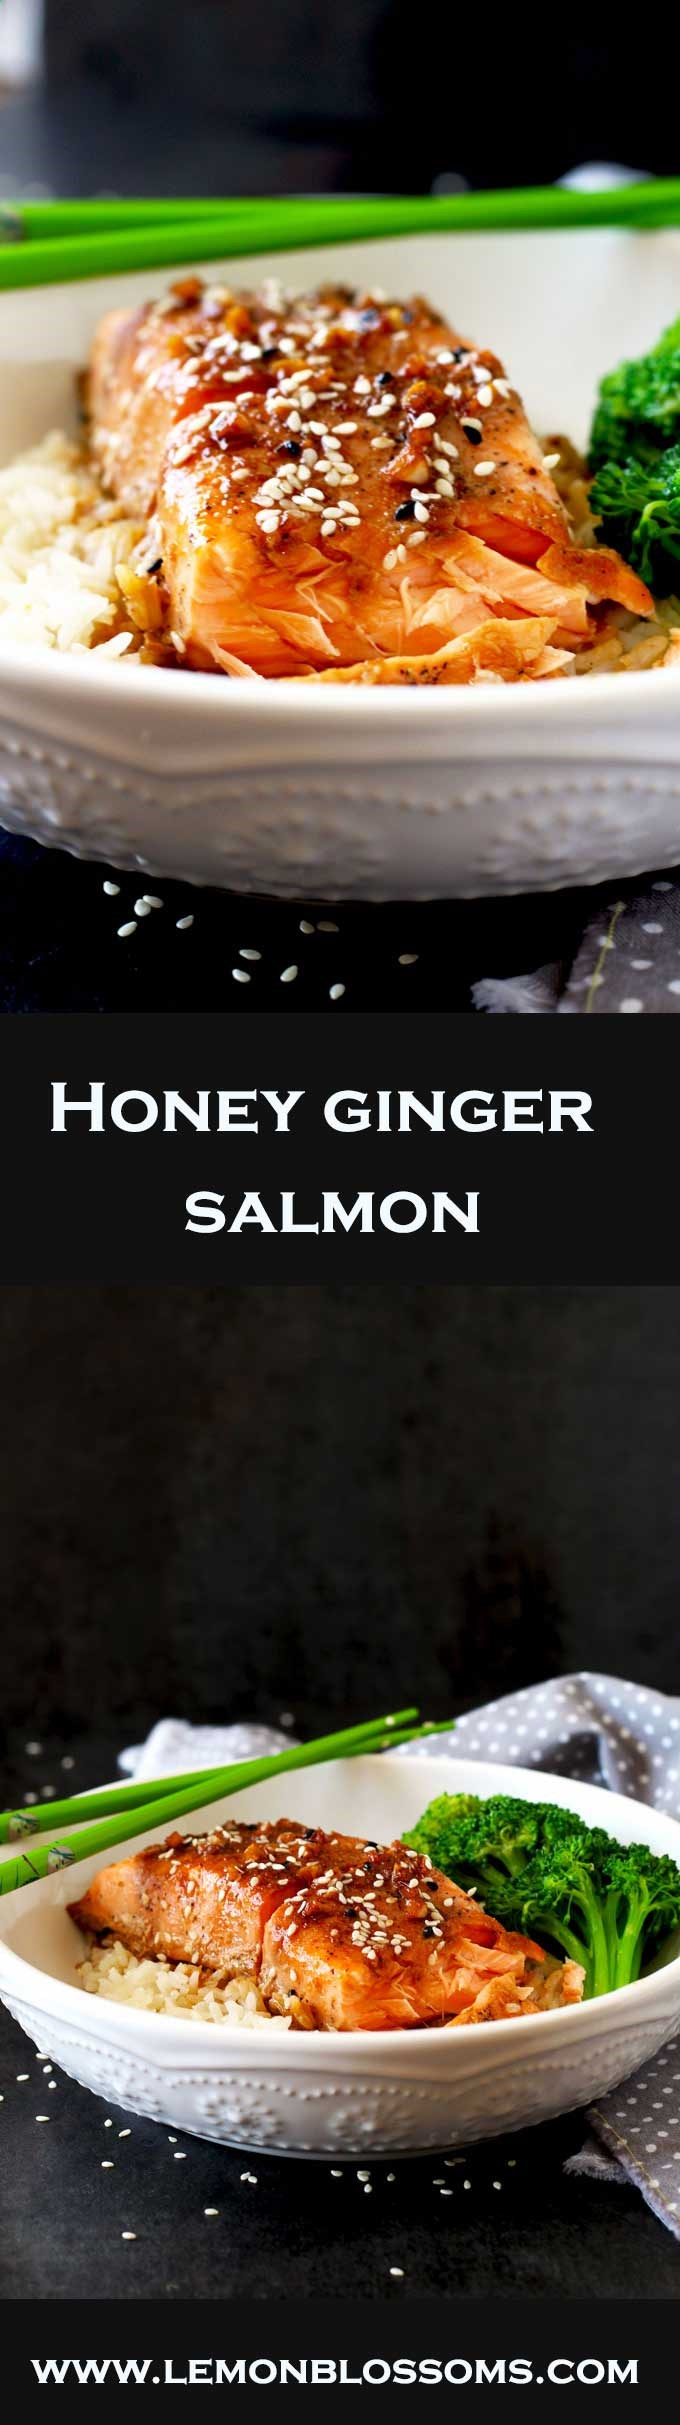 This Asian inspired Honey Ginger Salmon is not only healthy and delicious but super easy to make. The best part is you can have dinner ready in 20 minutes!